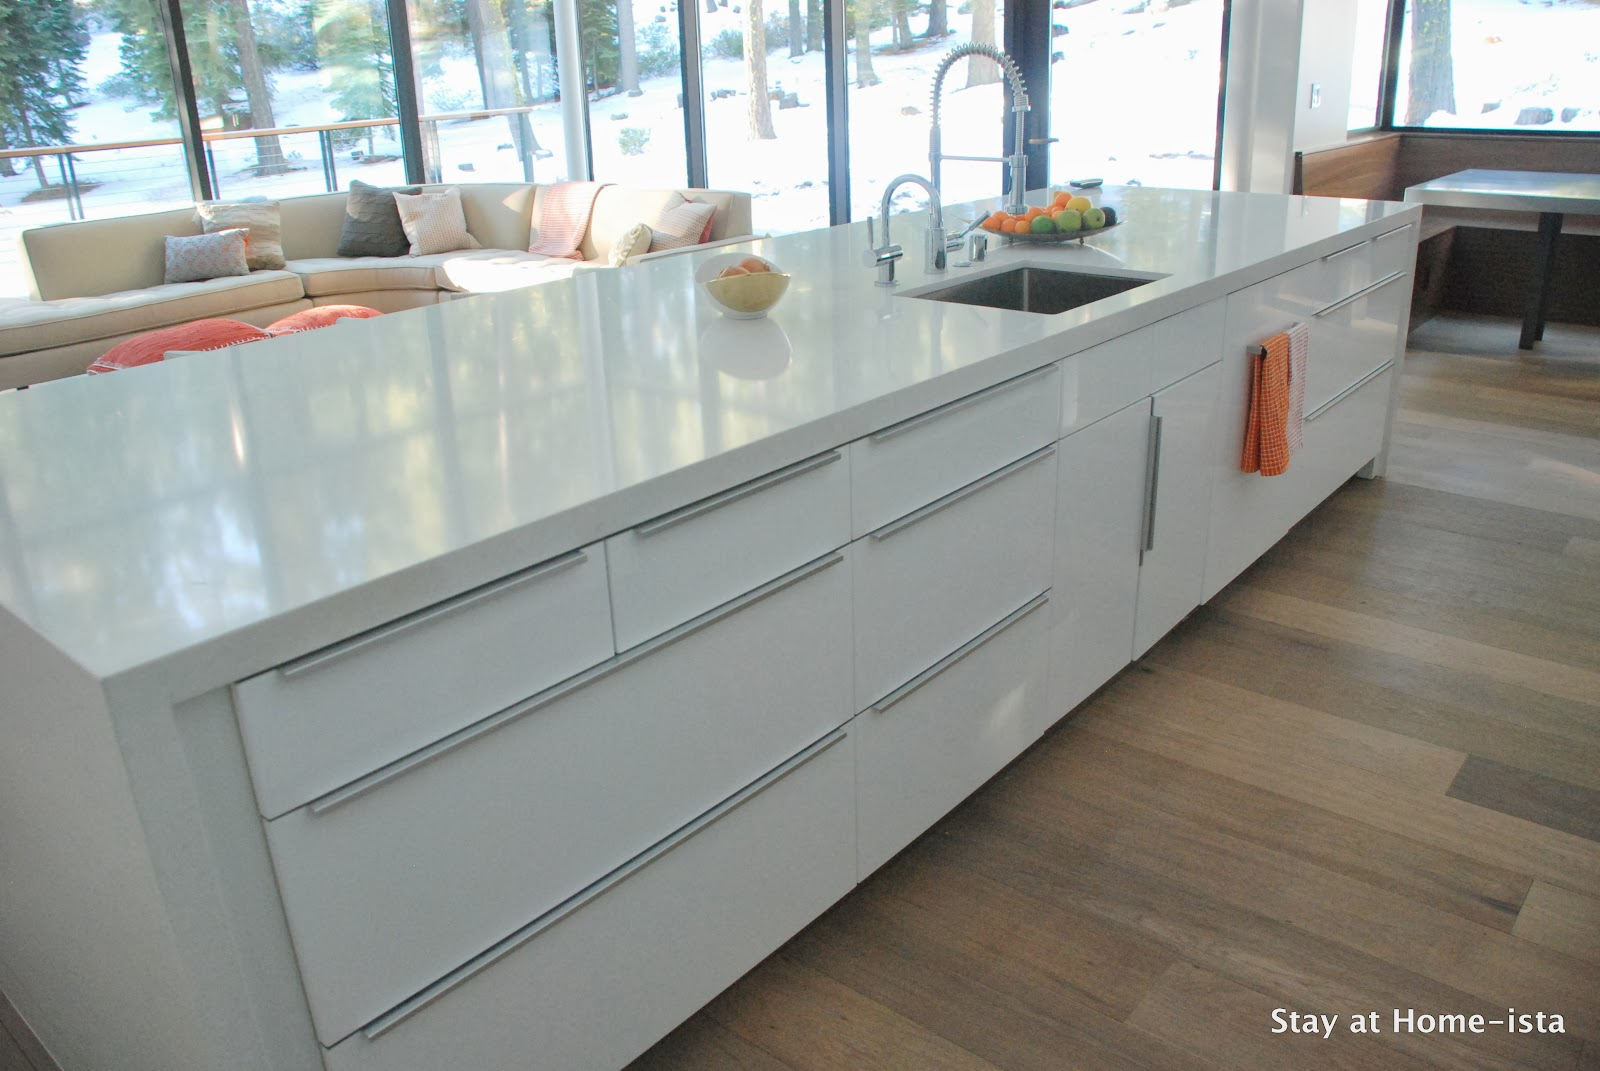 ikea kitchen counters nook ideas stay at home ista reveal modern vacation house